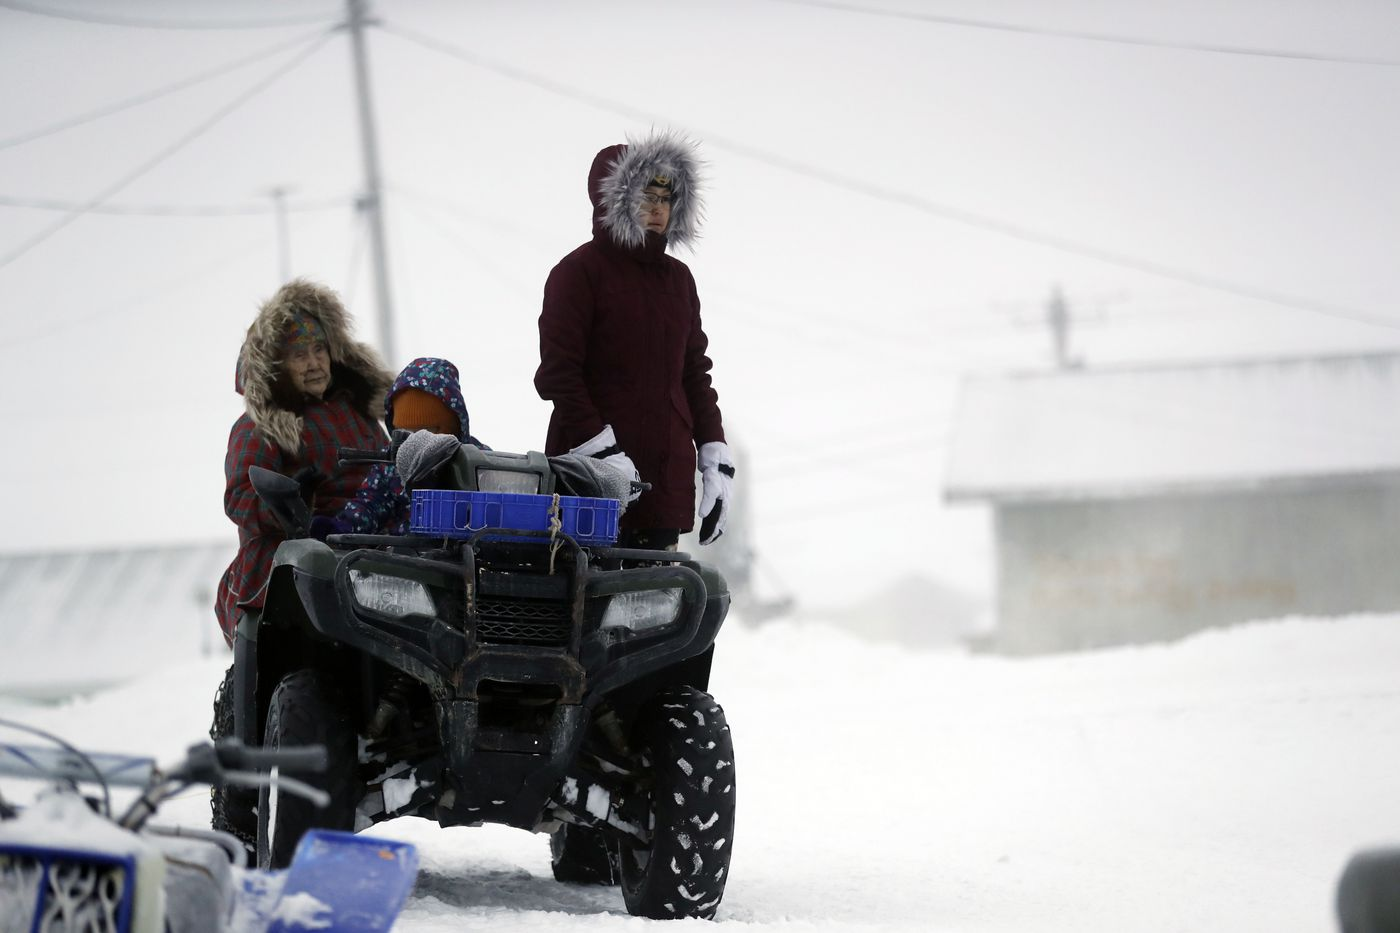 A family prepares to leave after services at the St. Peter Fisherman Church, Sunday, Jan. 19, 2020, in Toksook Bay, Alaska. The first Americans to be counted in the 2020 Census starting Tuesday, Jan. 21, live in this Bering Sea coastal village. The Census traditionally begins earlier in Alaska than the rest of the nation because frozen ground allows easier access for Census workers, and rural Alaska will scatter with the spring thaw to traditional hunting and fishing grounds. (AP Photo/Gregory Bull)